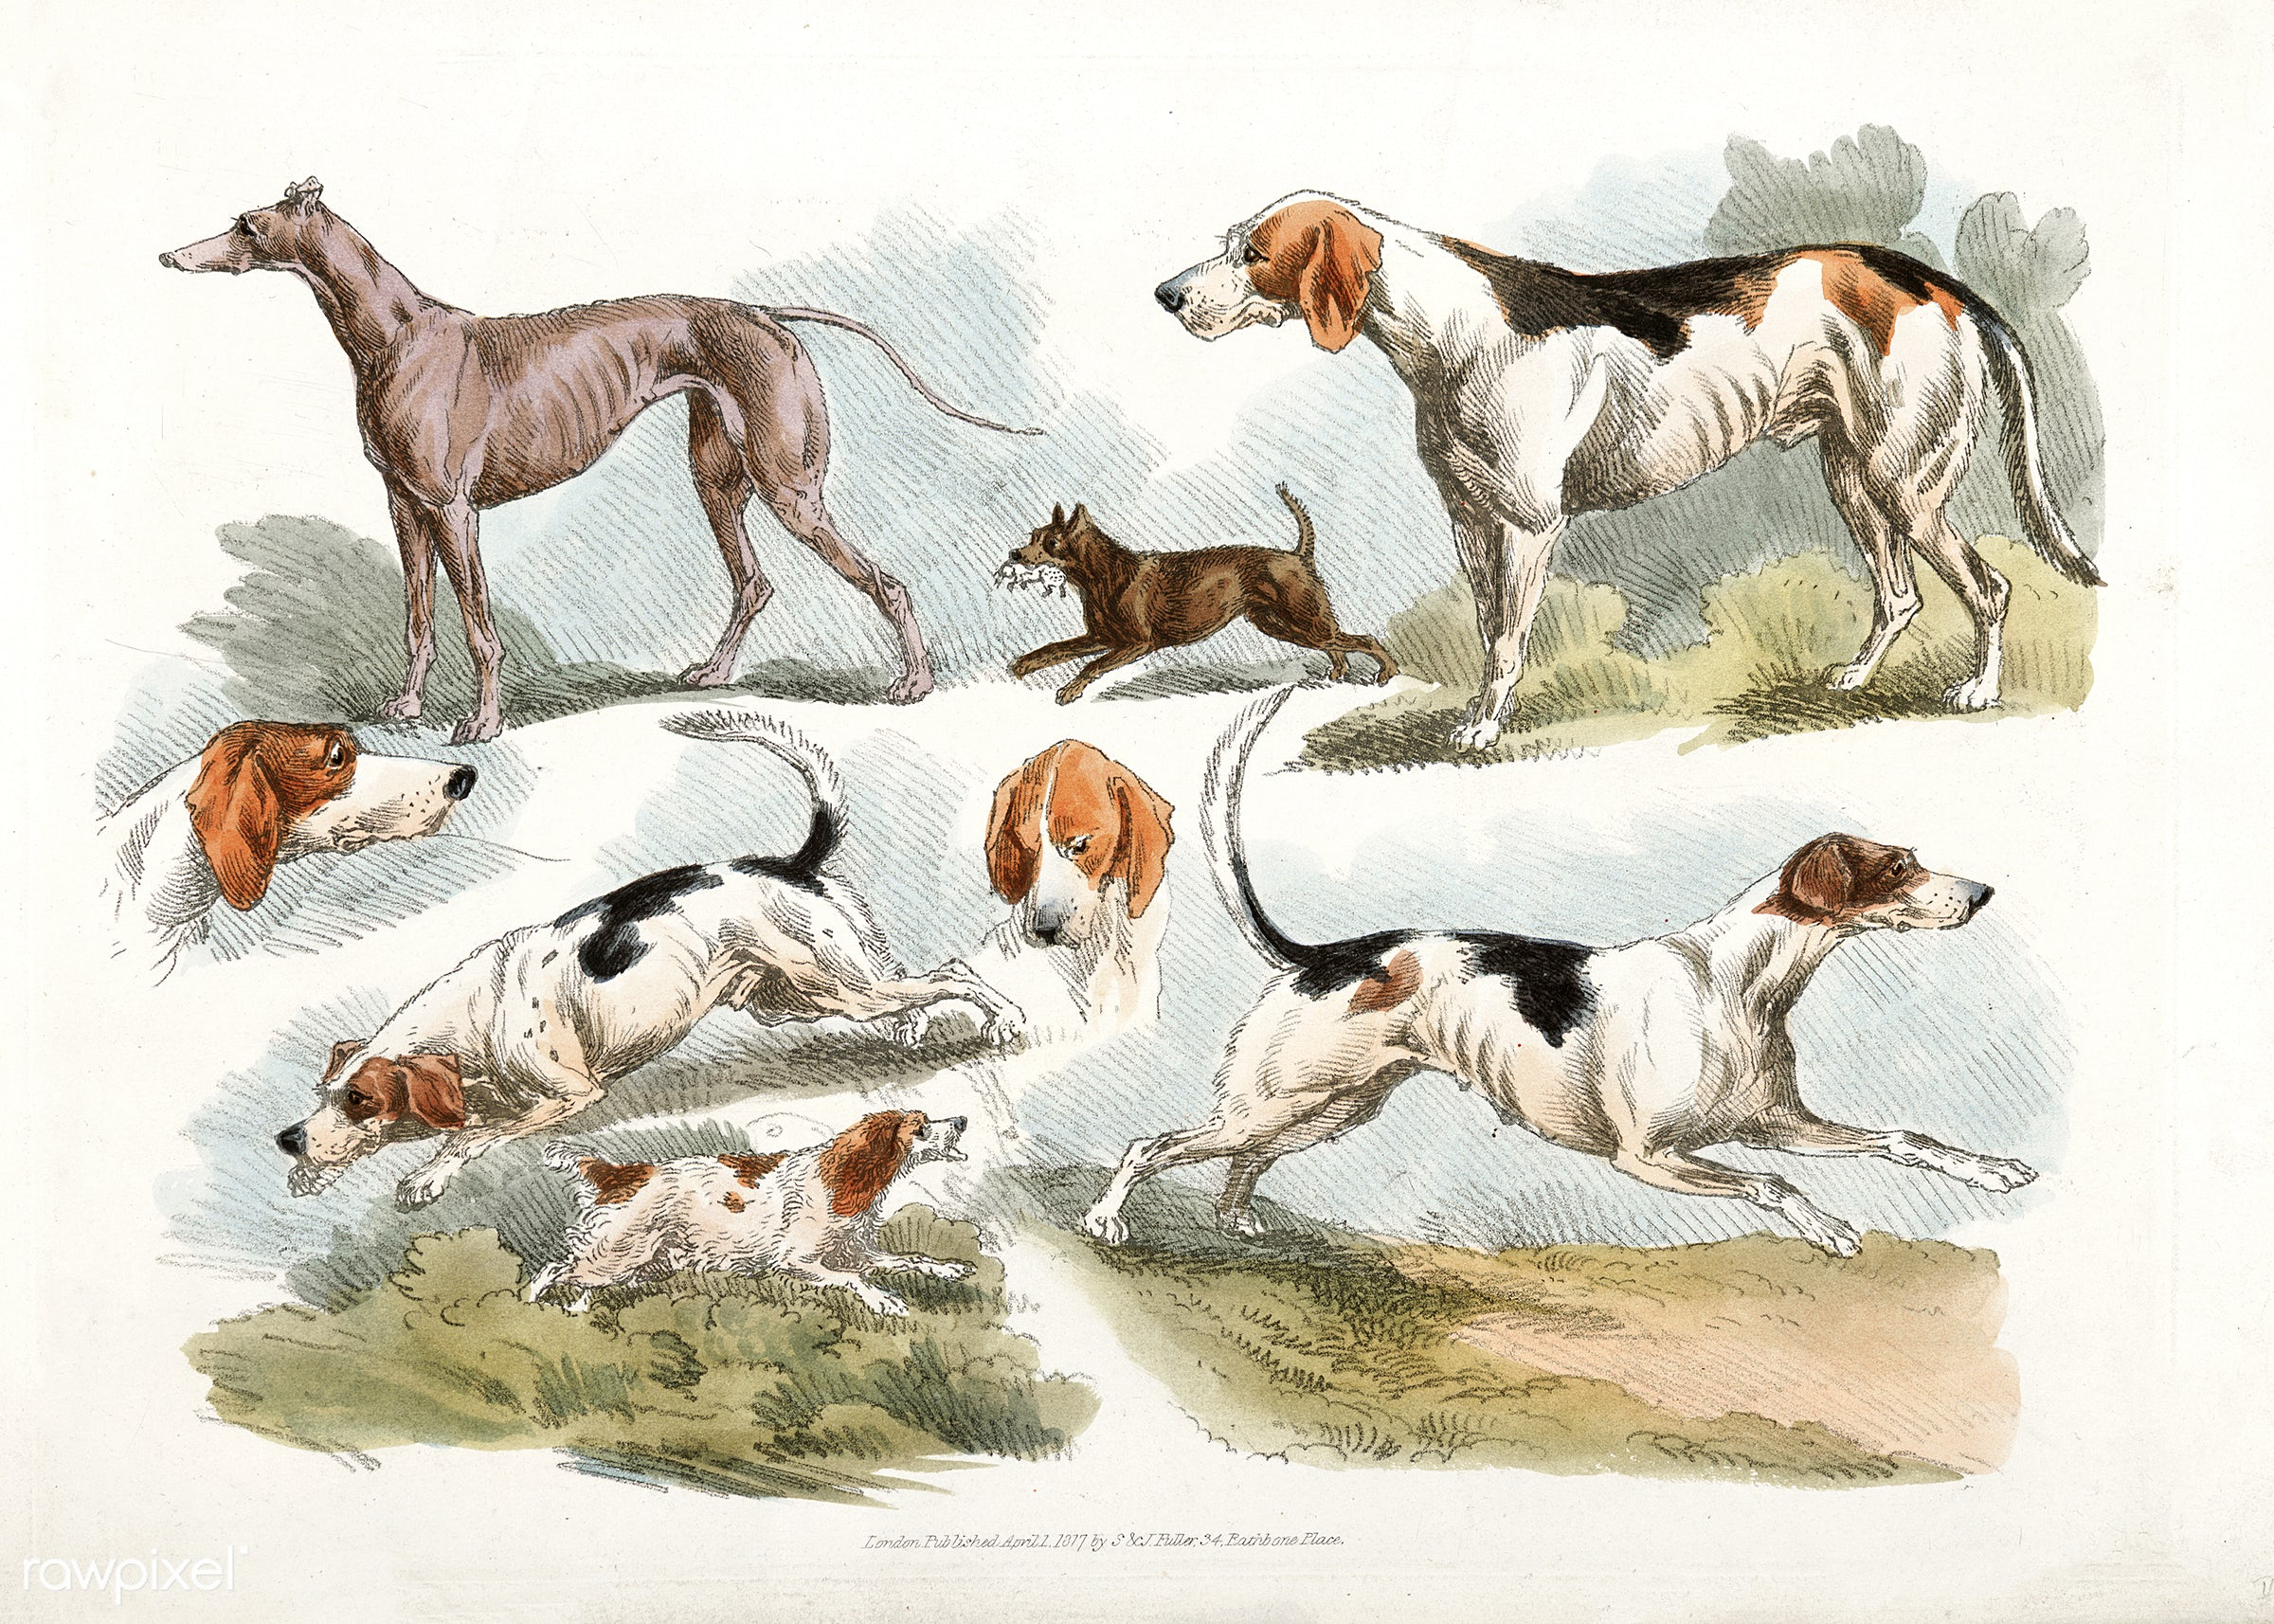 Illustration of hunting dogs from Sporting Sketches (1817-1818) by Henry Alken (1784-1851). - animal, antique, cc0, creative...